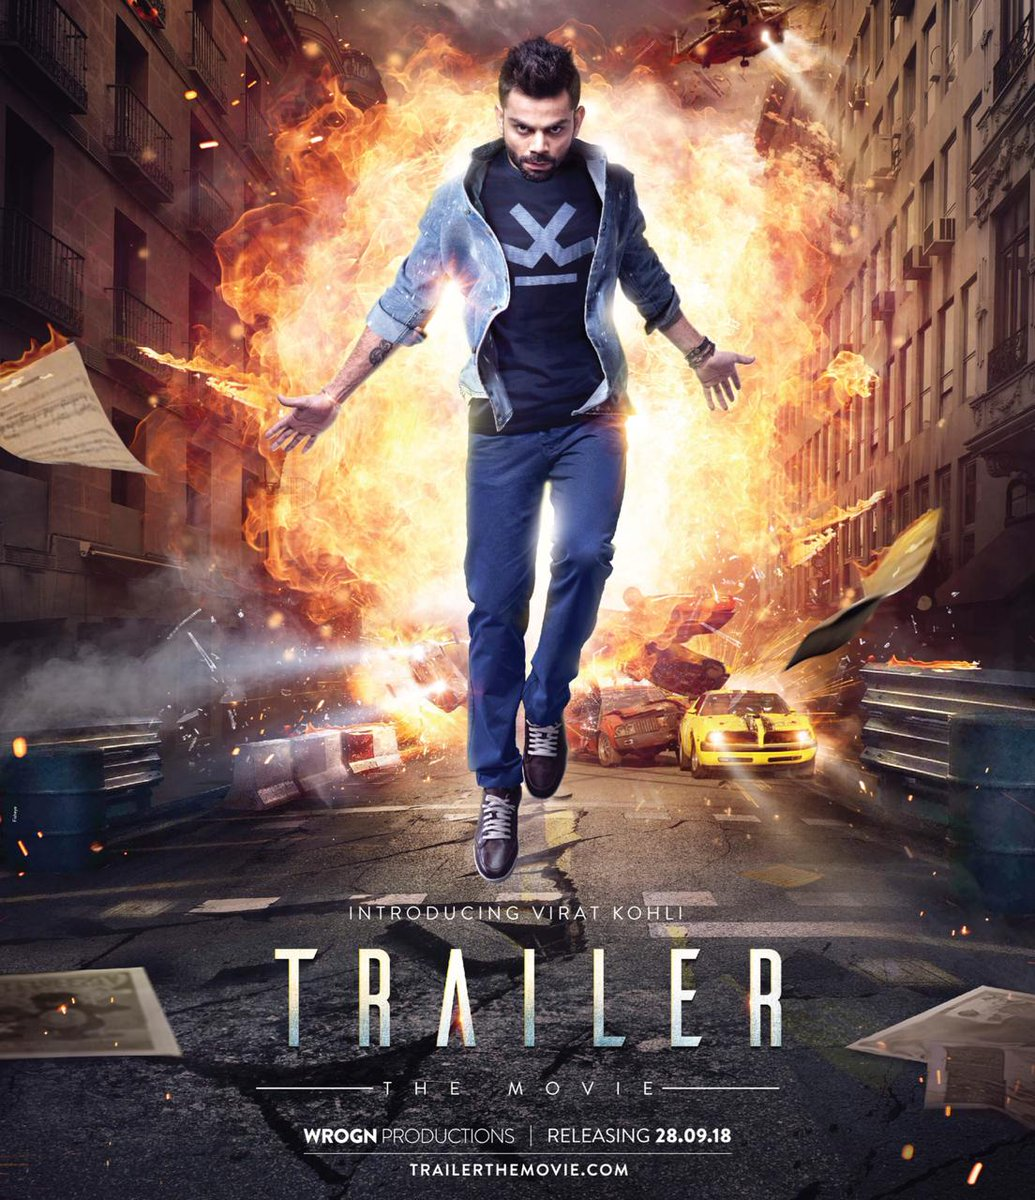 Another debut after 10 years, can't wait! 😀 #TrailerTheMovie https://t.co/zDgE4JrdDT